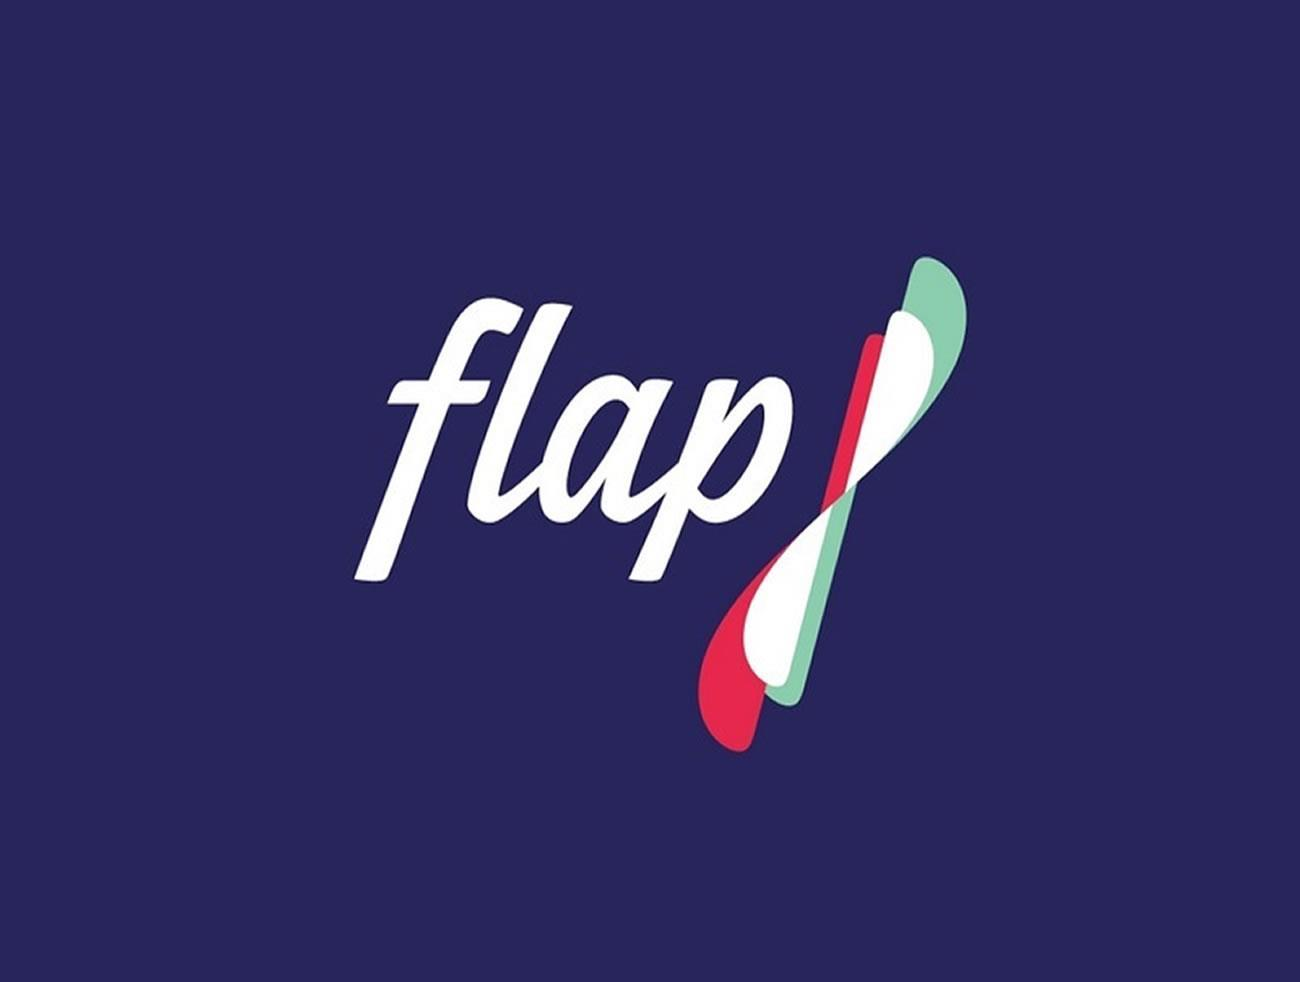 FLAP Live Marketing comemora 13 anos de mercado